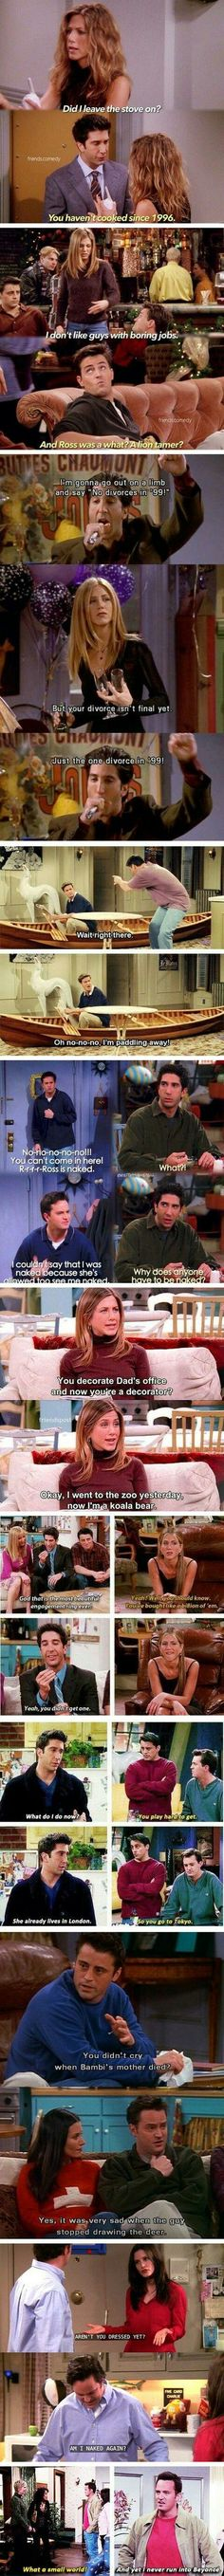 Funny Friends Quotes Humor Hilarious New Ideas Friends Tv Show, Serie Friends, Friends Moments, Friends Forever, Laughter Friends, Ross Geller, Best Tv Shows, Favorite Tv Shows, Friend Memes